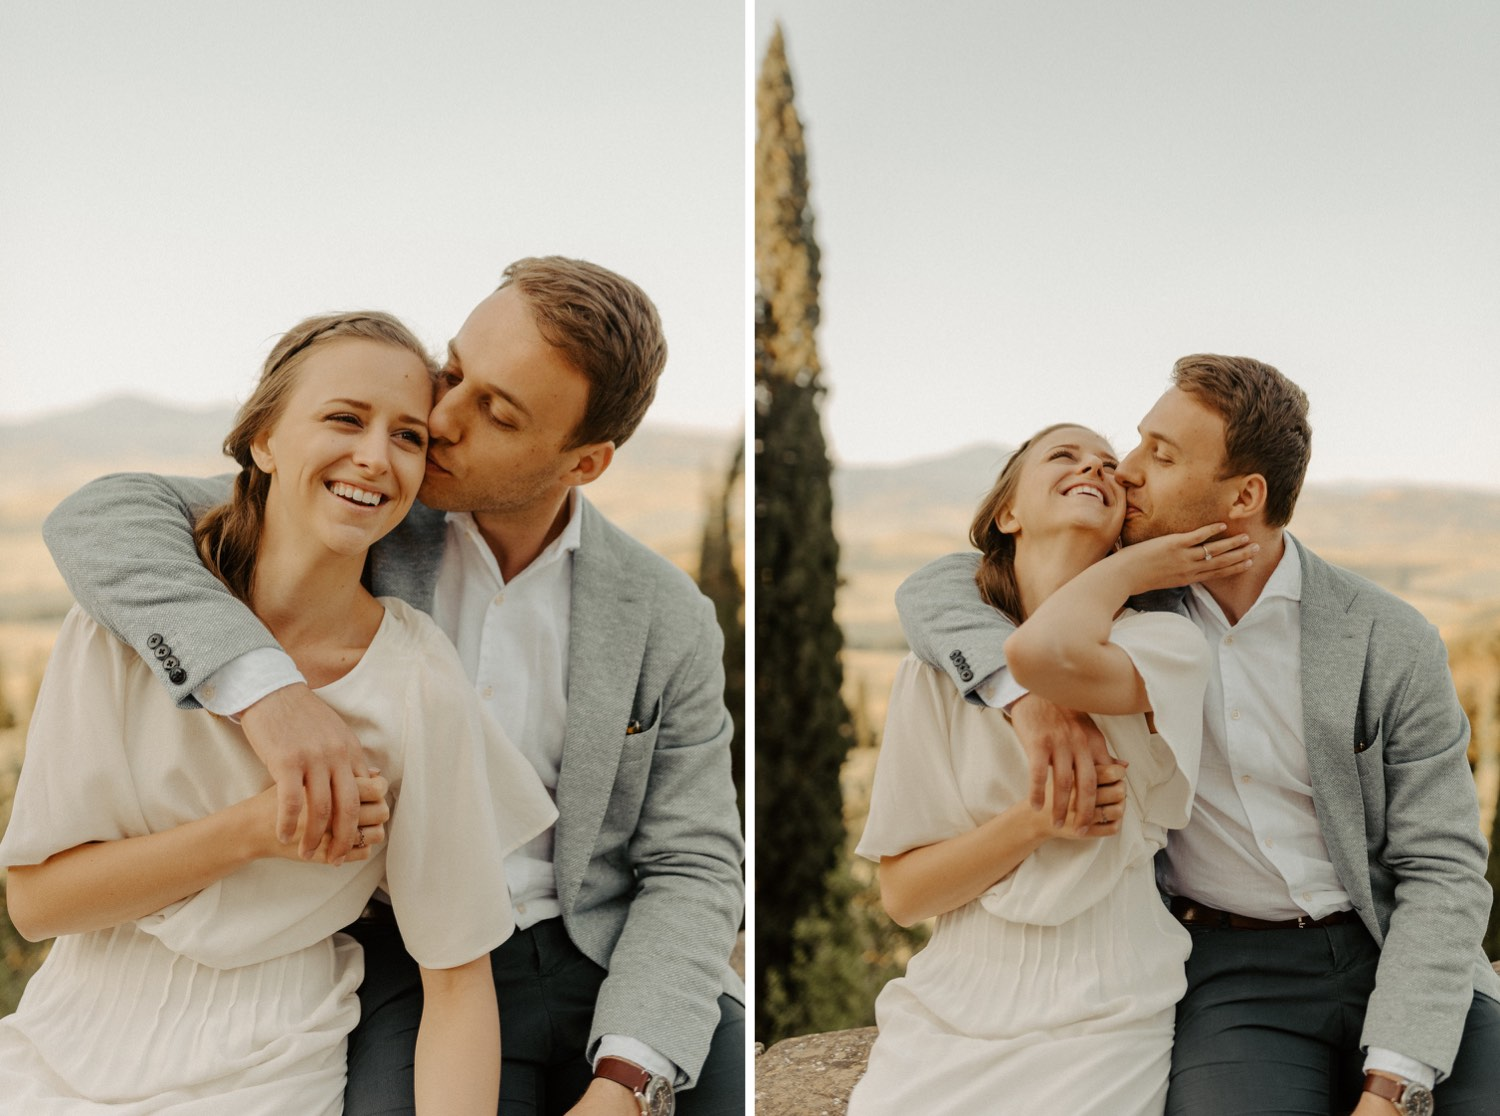 31_ali-dirk-pre-wedding-129_ali-dirk-pre-wedding-126_tuscany_destination_german_wedding_italy_intimate.jpg